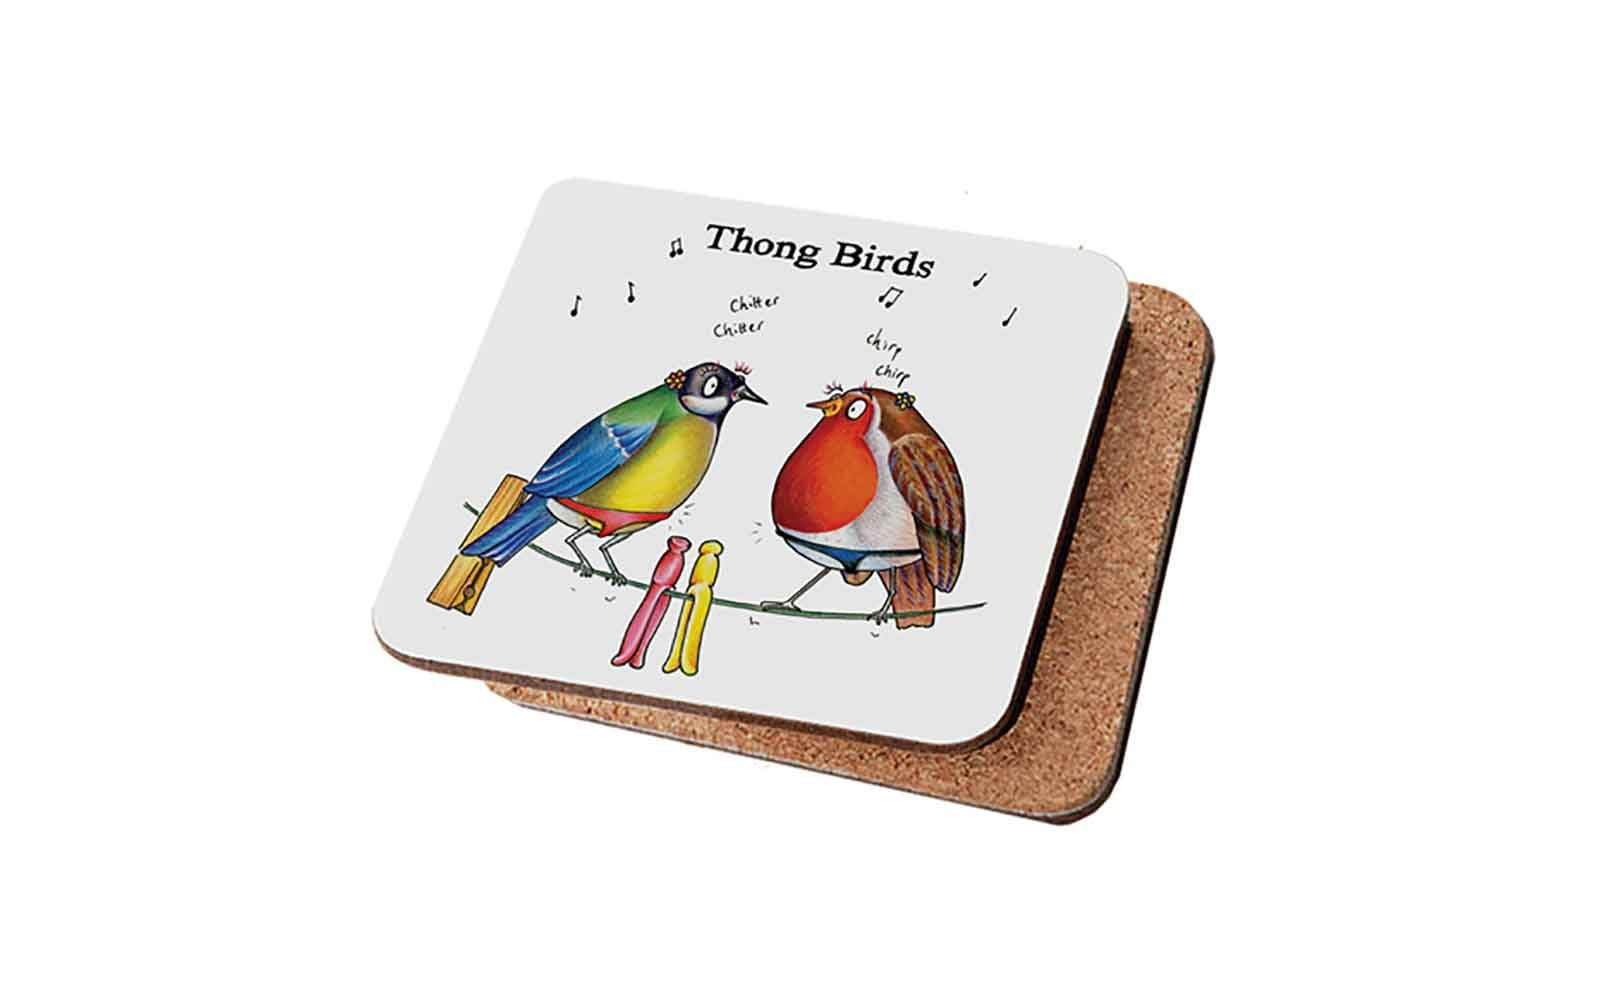 Thong Birds Coaster